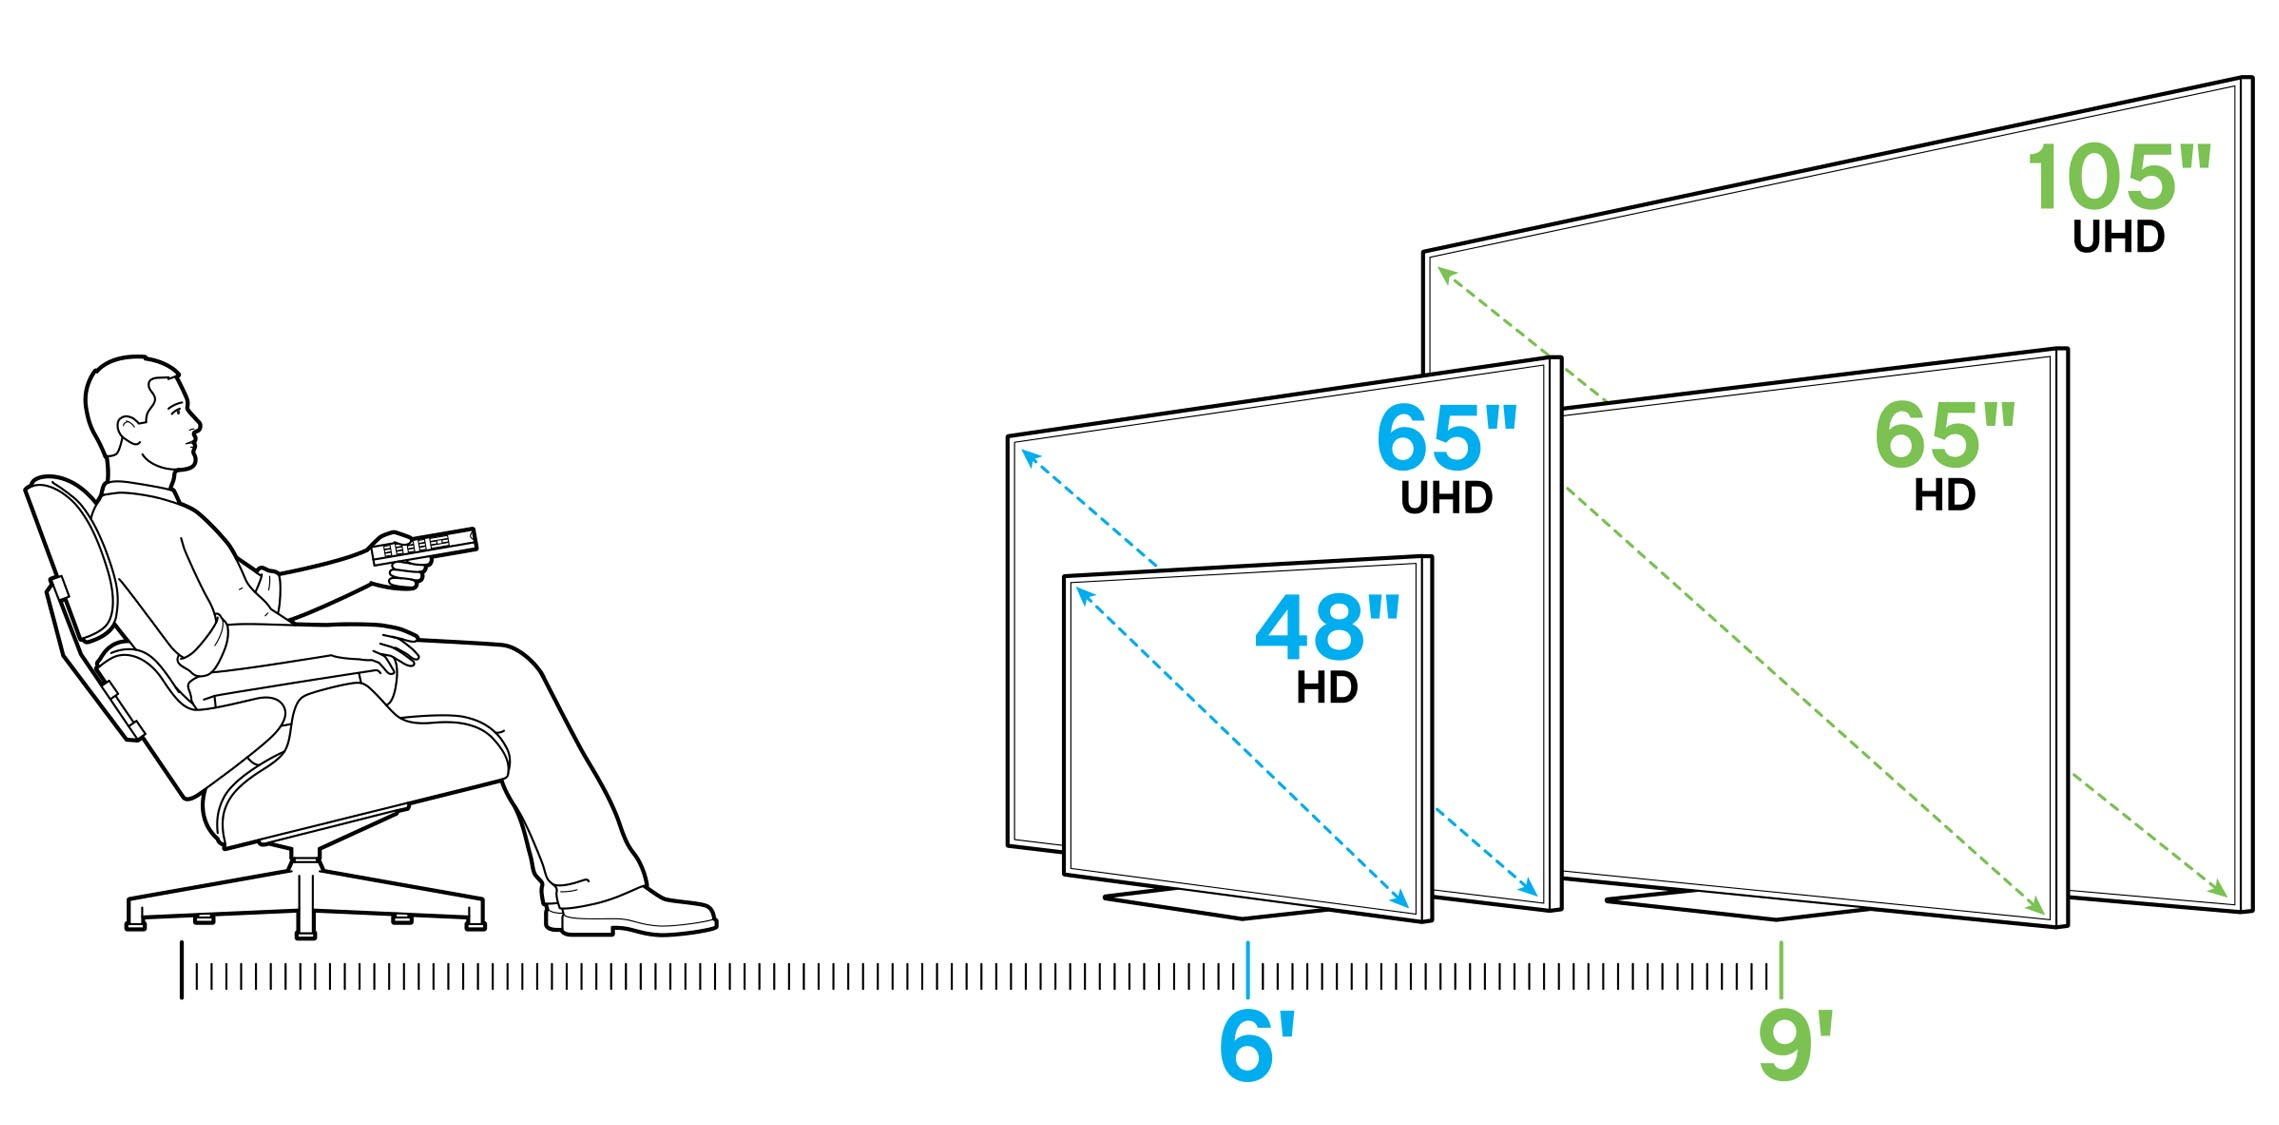 Ilration Of 1080p And Uhd Tv Size Based On 6 9 Foot Viewing